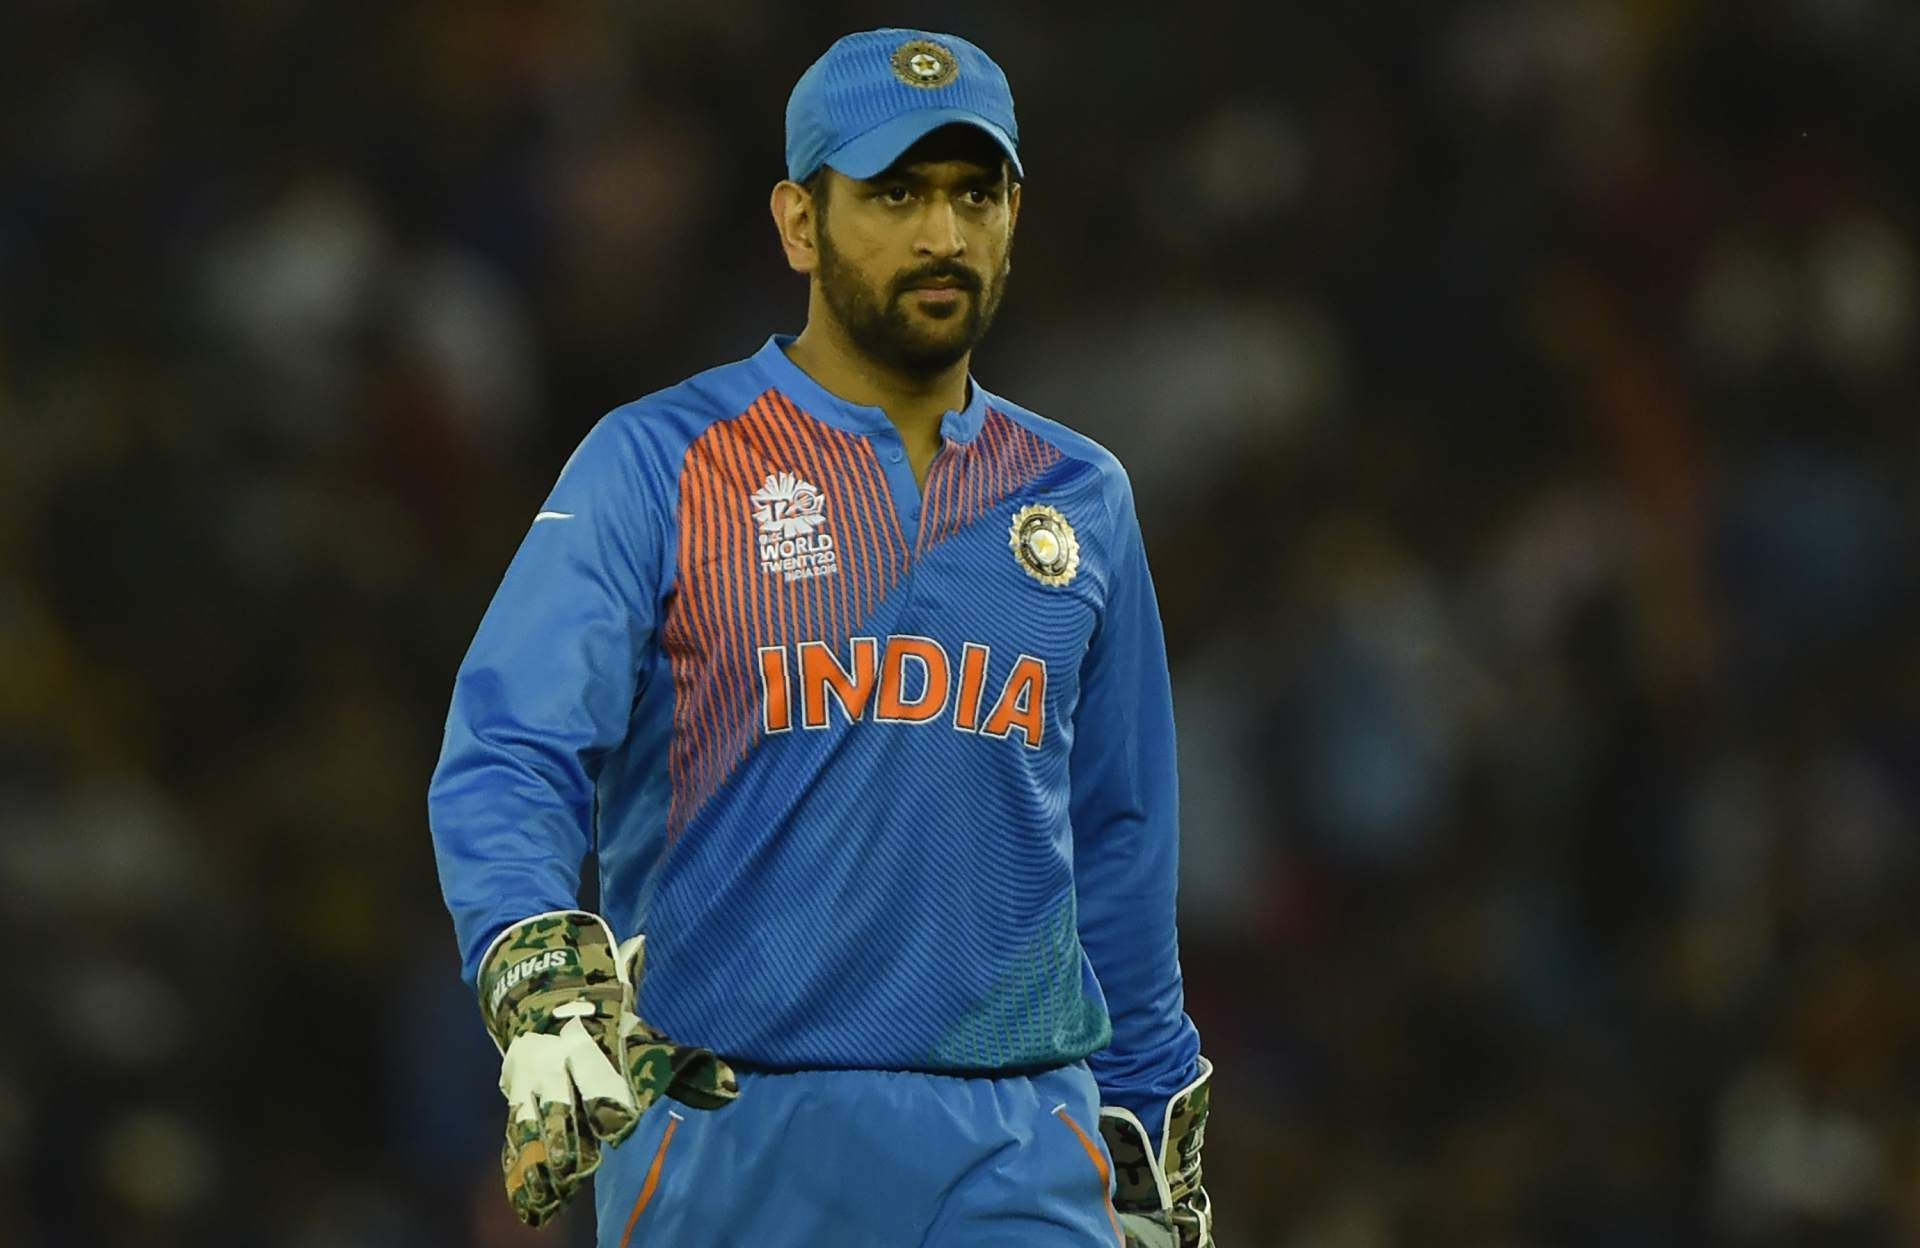 4k Ultra Hd Ms Dhoni Quotes Wallpaper